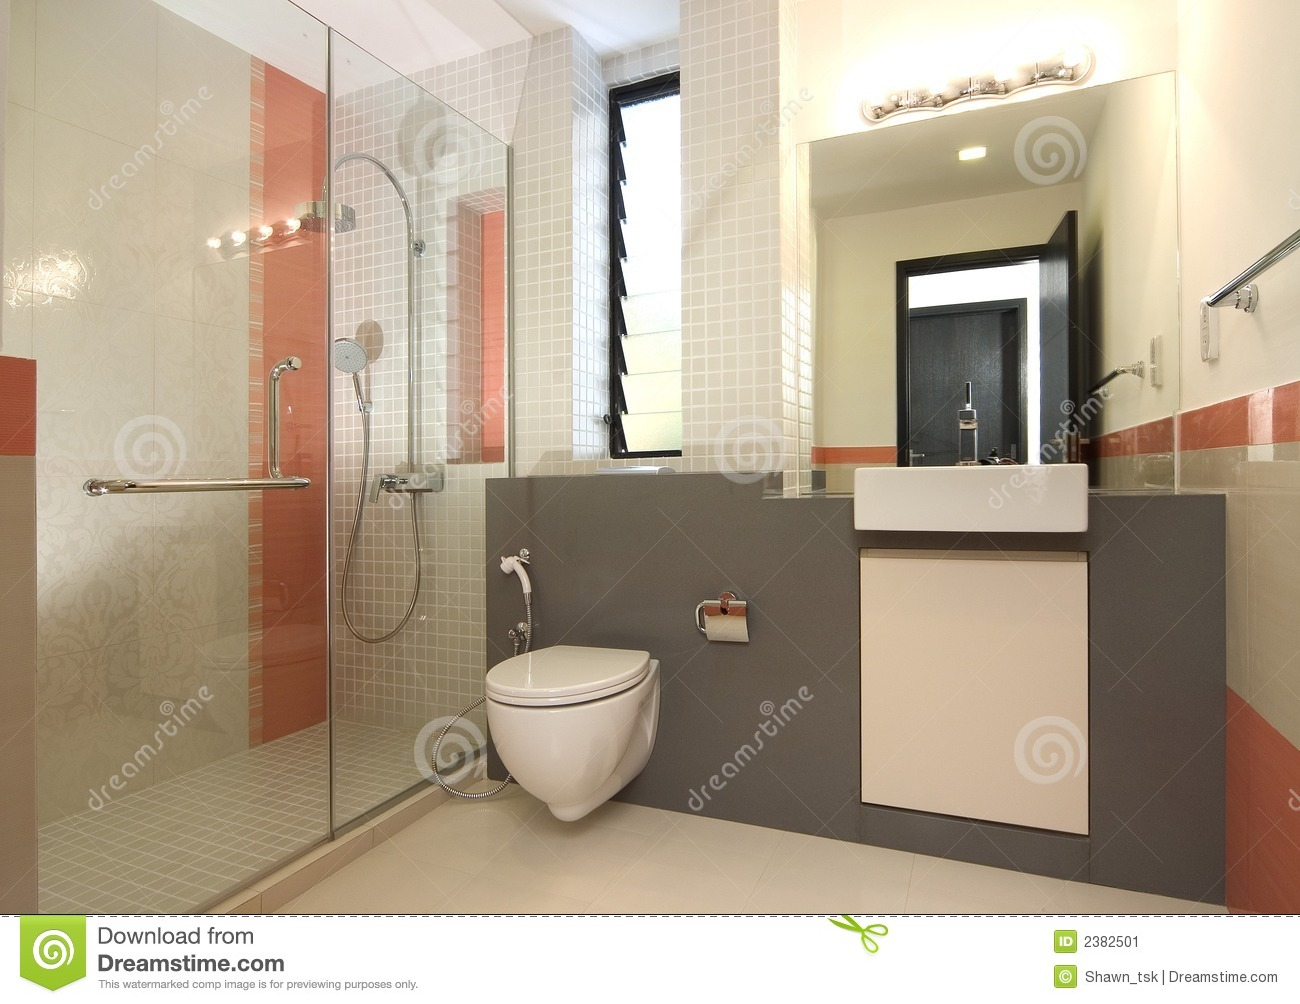 Interior design bathroom stock image image of light for Bathroom interior images